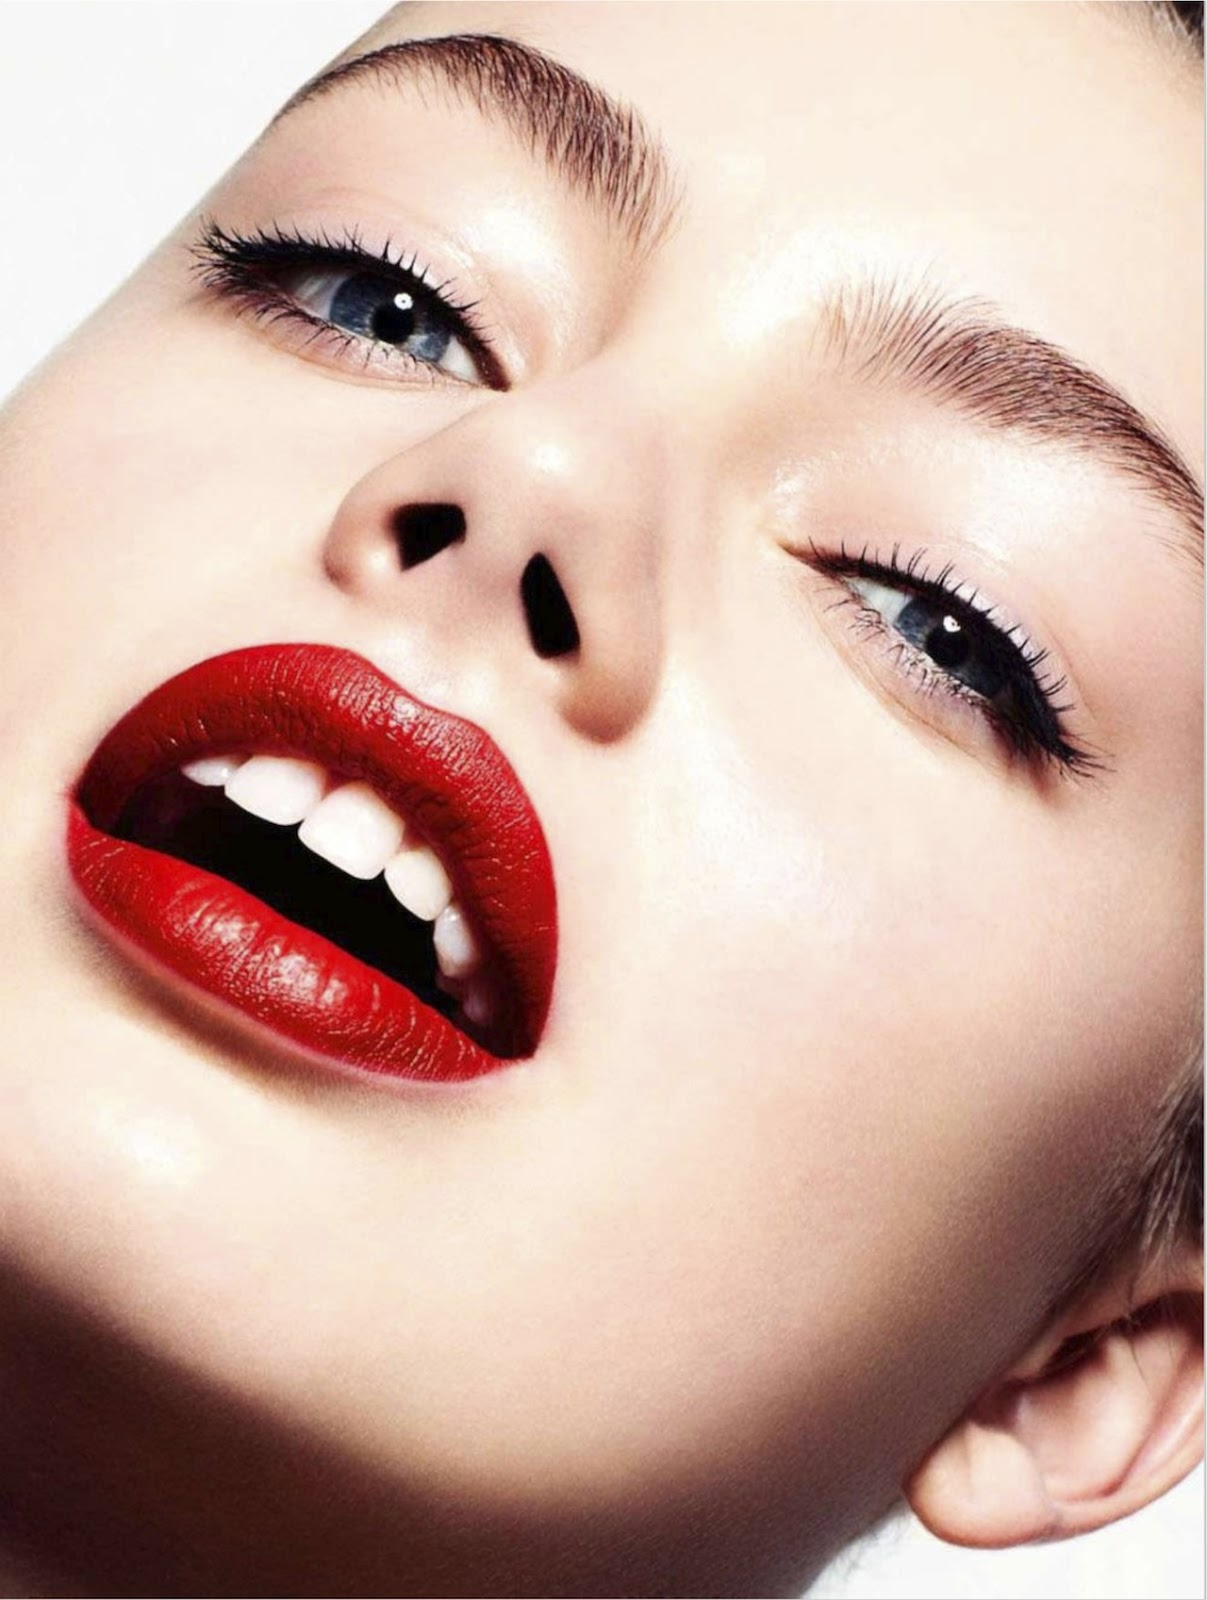 Glamour Makeup: 3d Your Make-up: Hanna Verhees By David Oldham For Uk